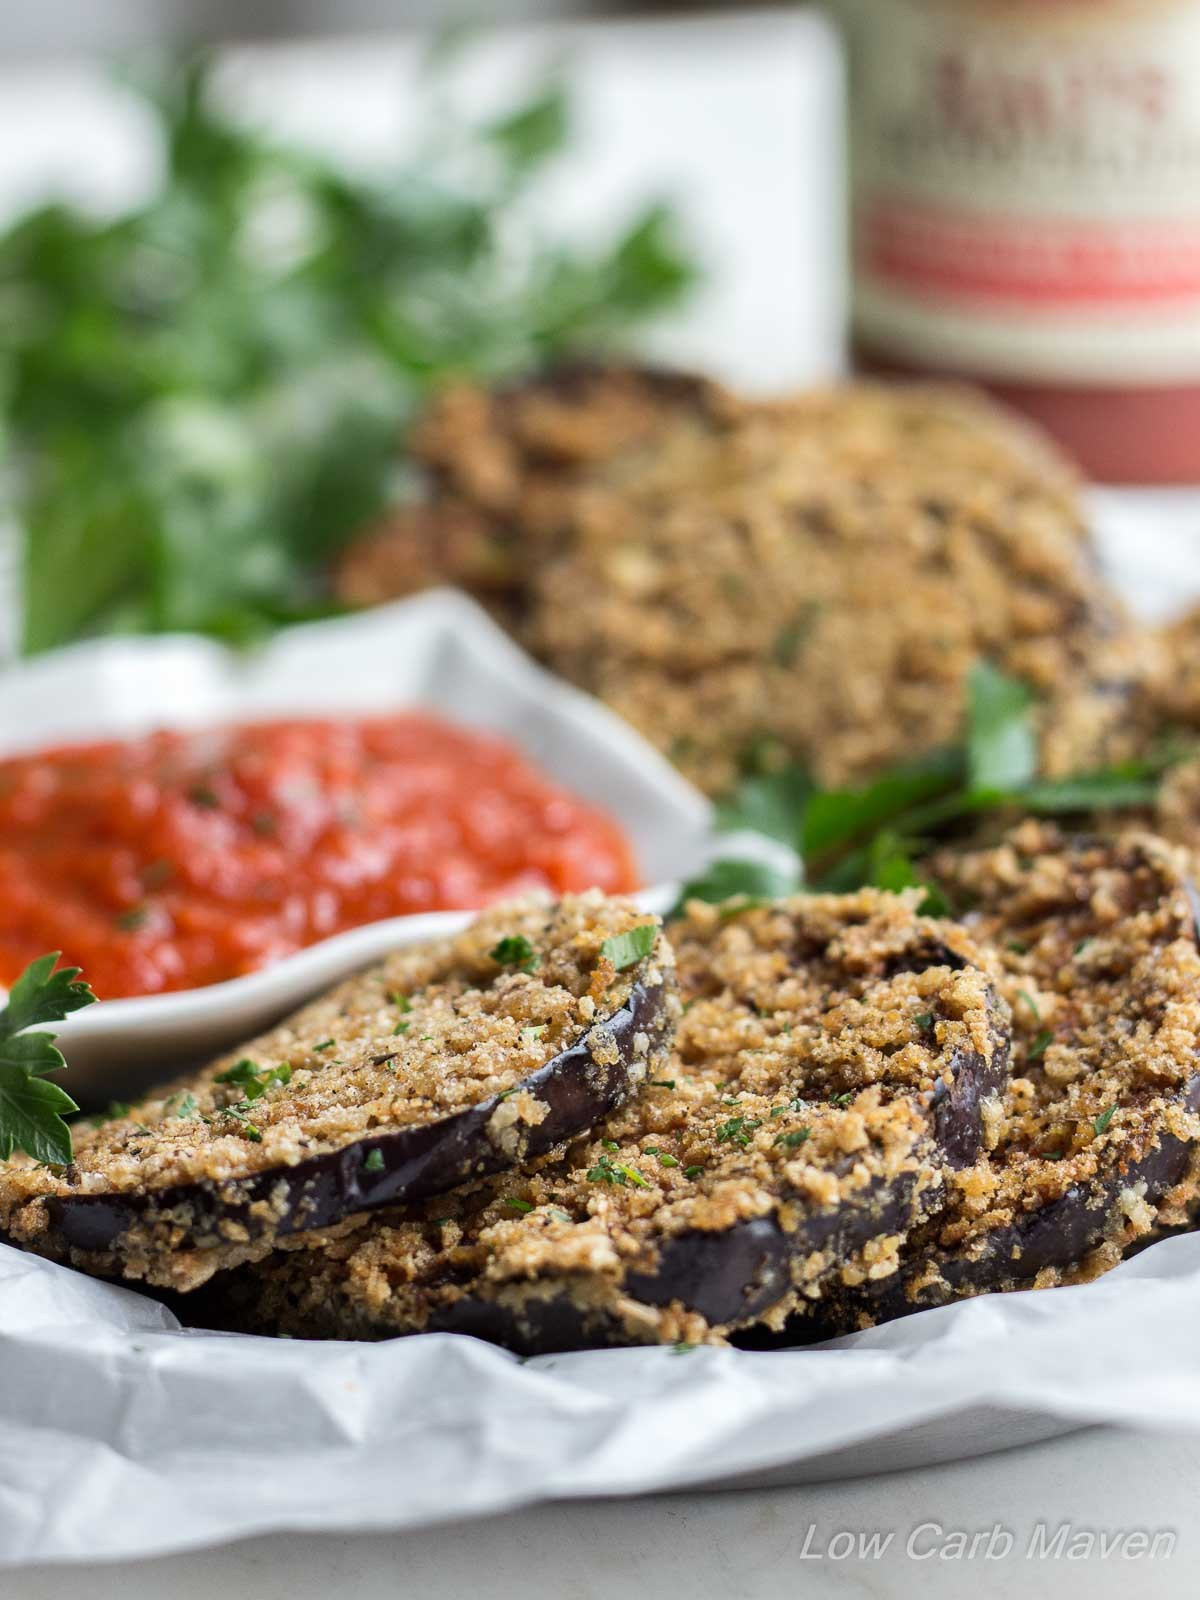 Eggplant Low Carb Recipes  The BEST Low Carb and Gluten Free Eggplant Recipes Kalyn